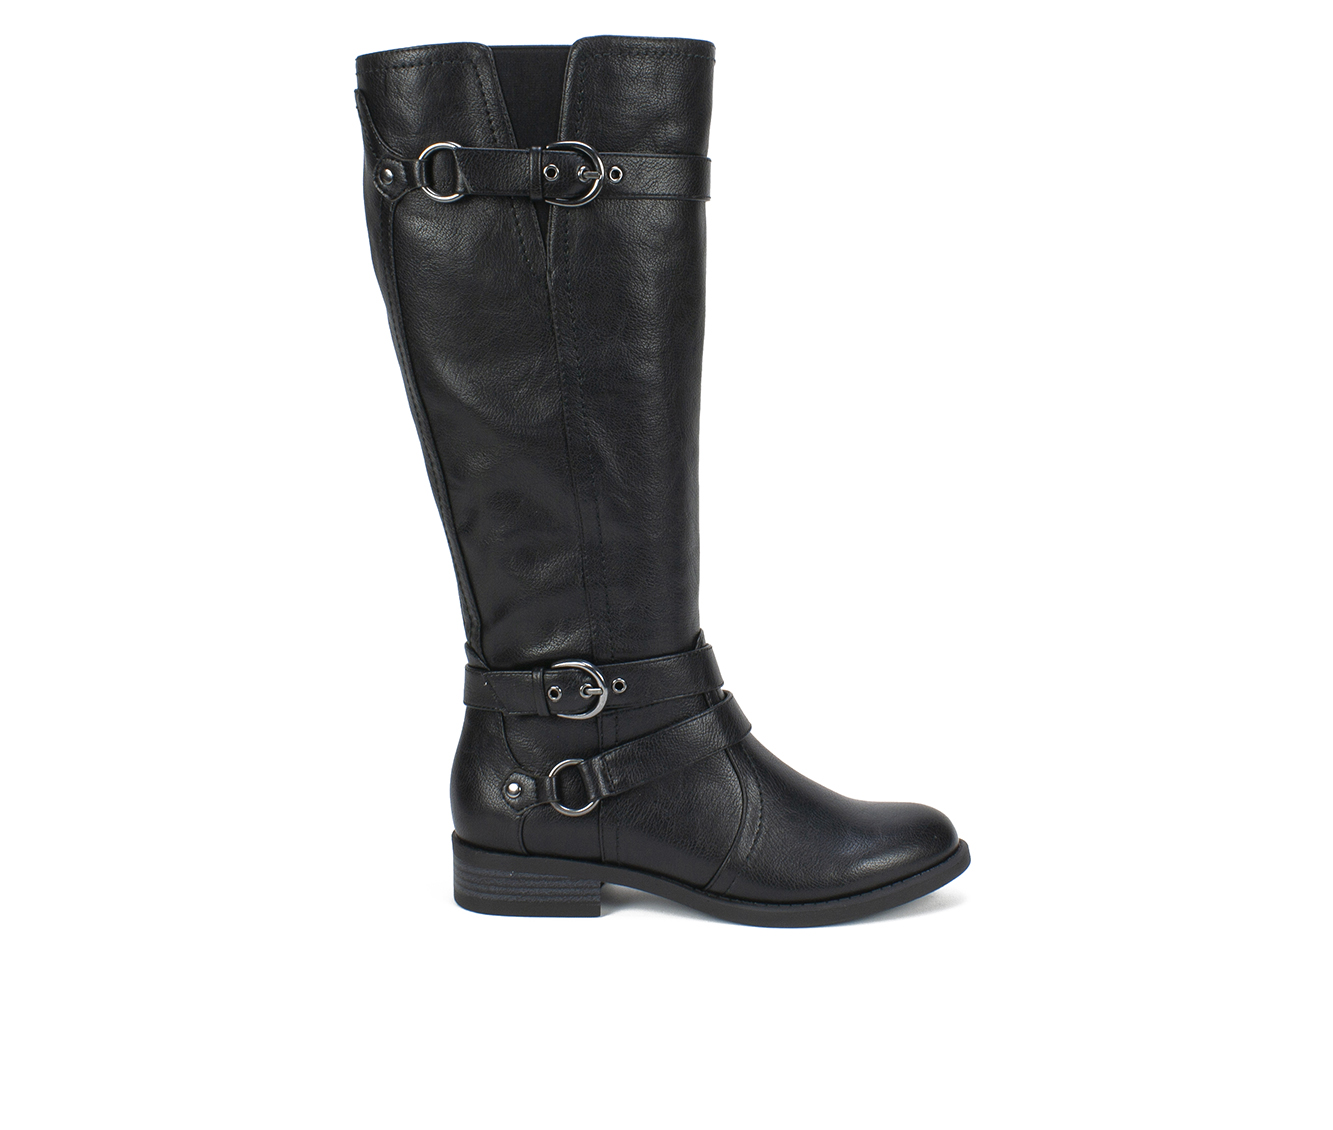 White Mountain Loyal Women's Boots (Black - Faux Leather)